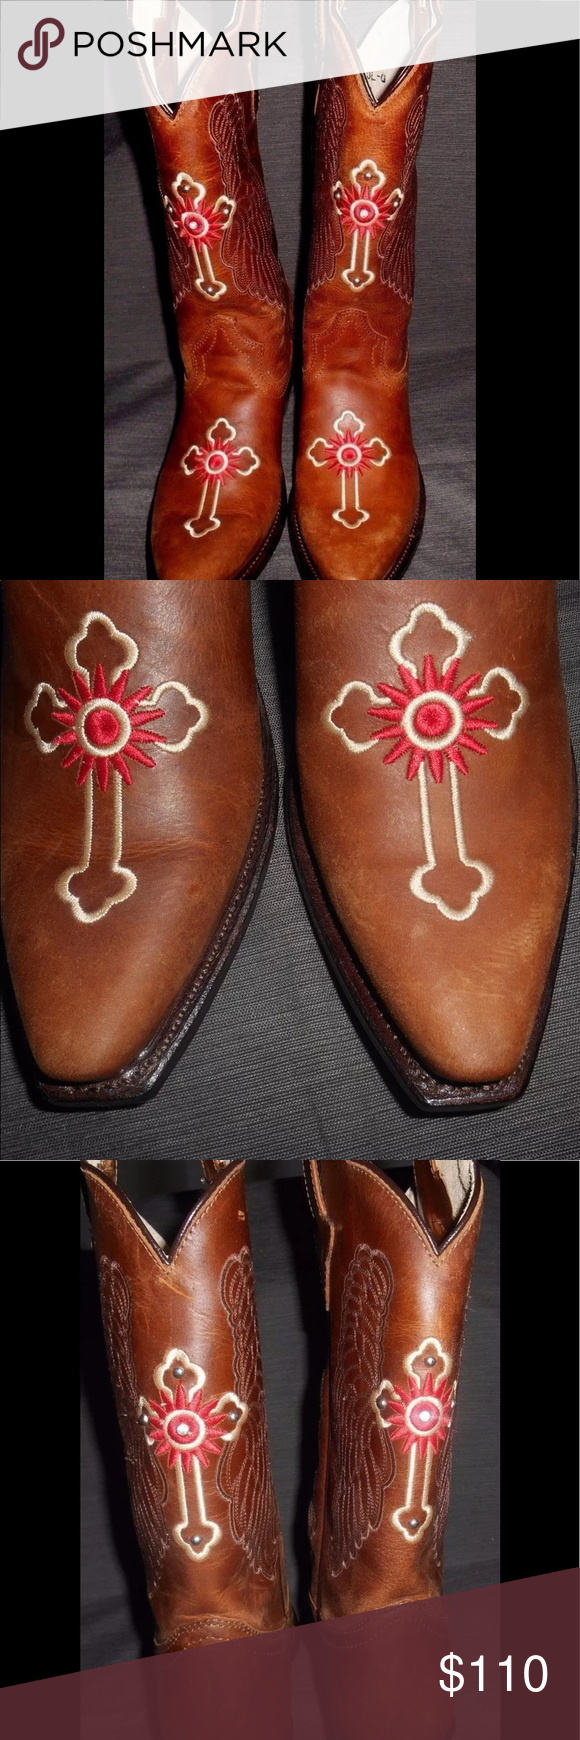 GYPSY ROSE COWGIRL BOOTS WOMENS SIZE 7.5 BROWN LEATHER EMBROIDER /& RHINESTONES